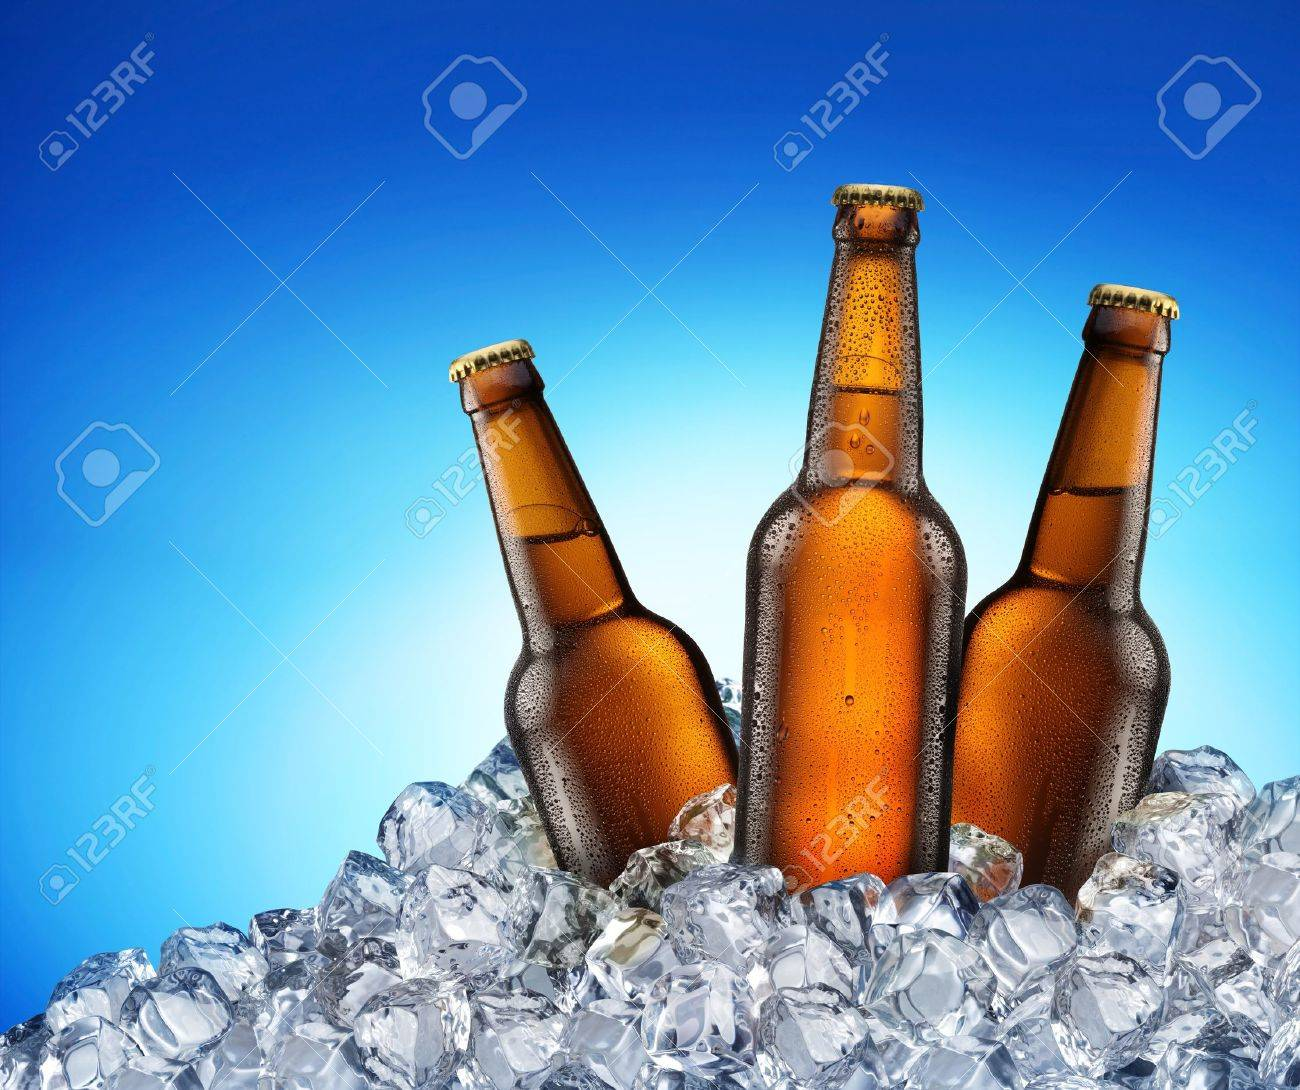 Three beer bottles getting cool in ice cubes. Isolated on a blue. File contains a path to cut - 8296269